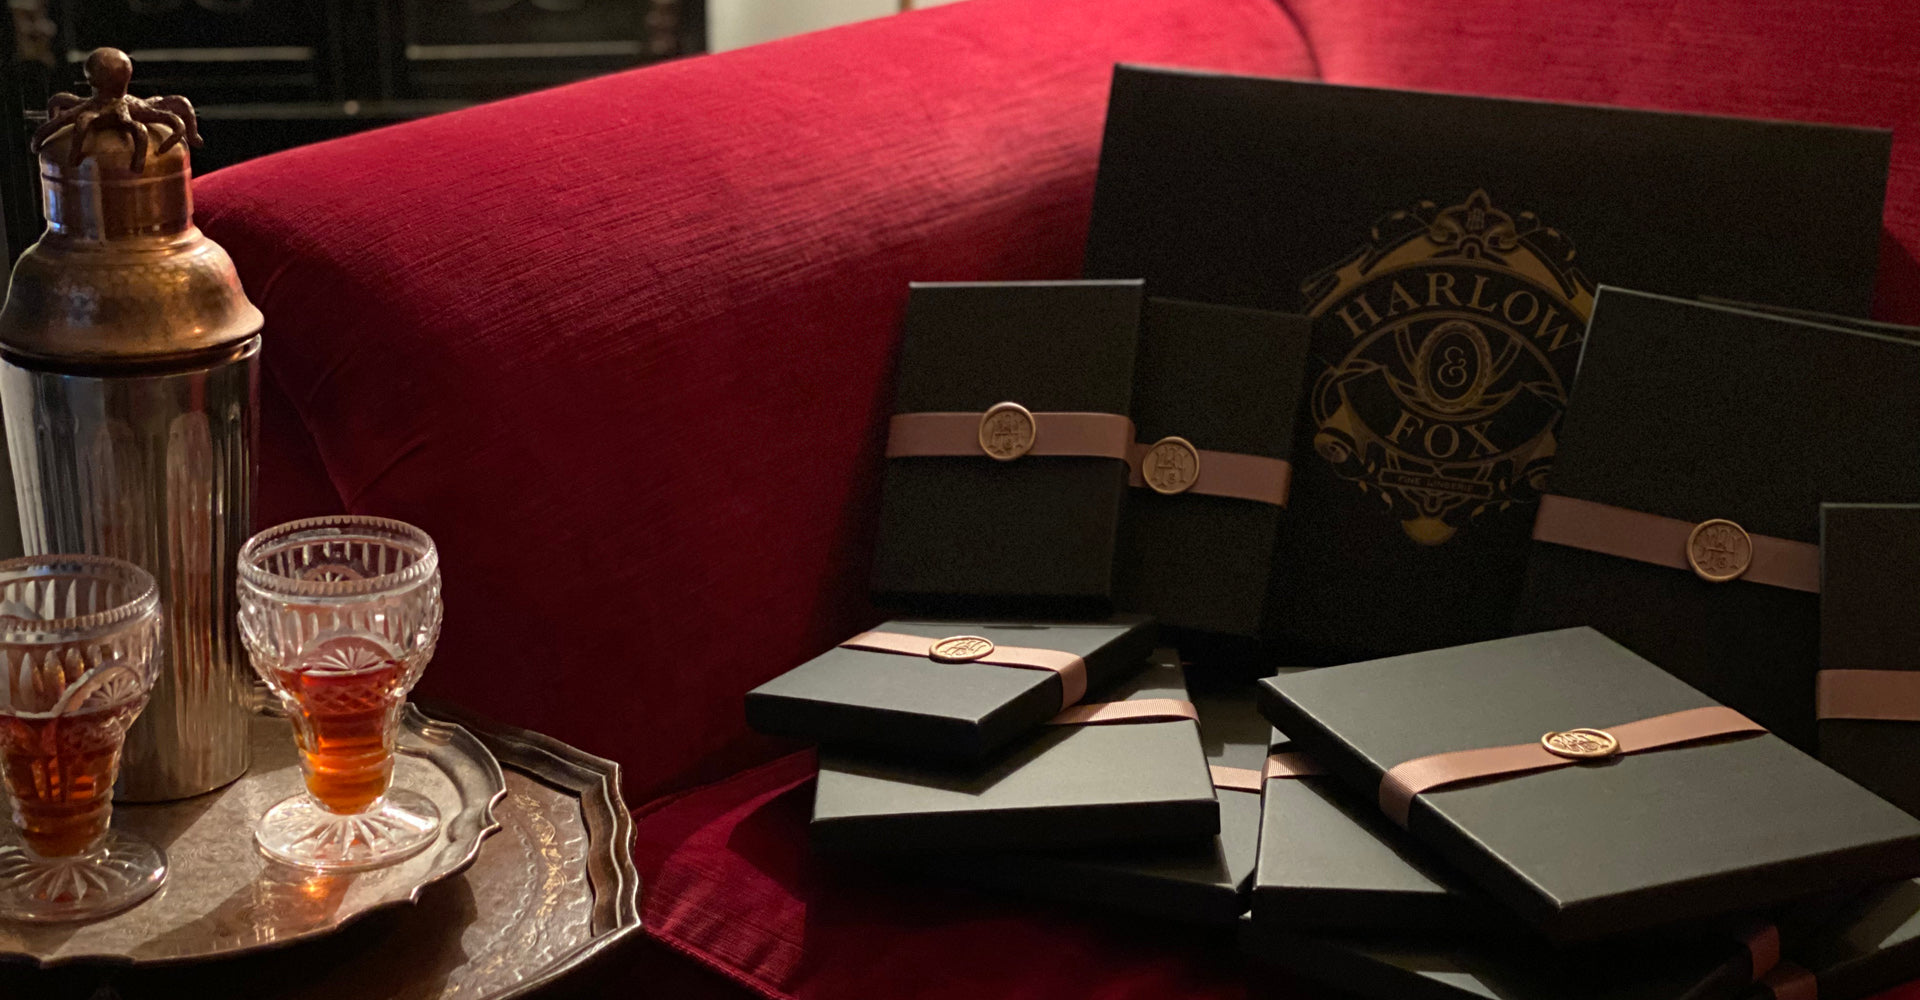 Luxury lingerie gift box set including 12 gifts